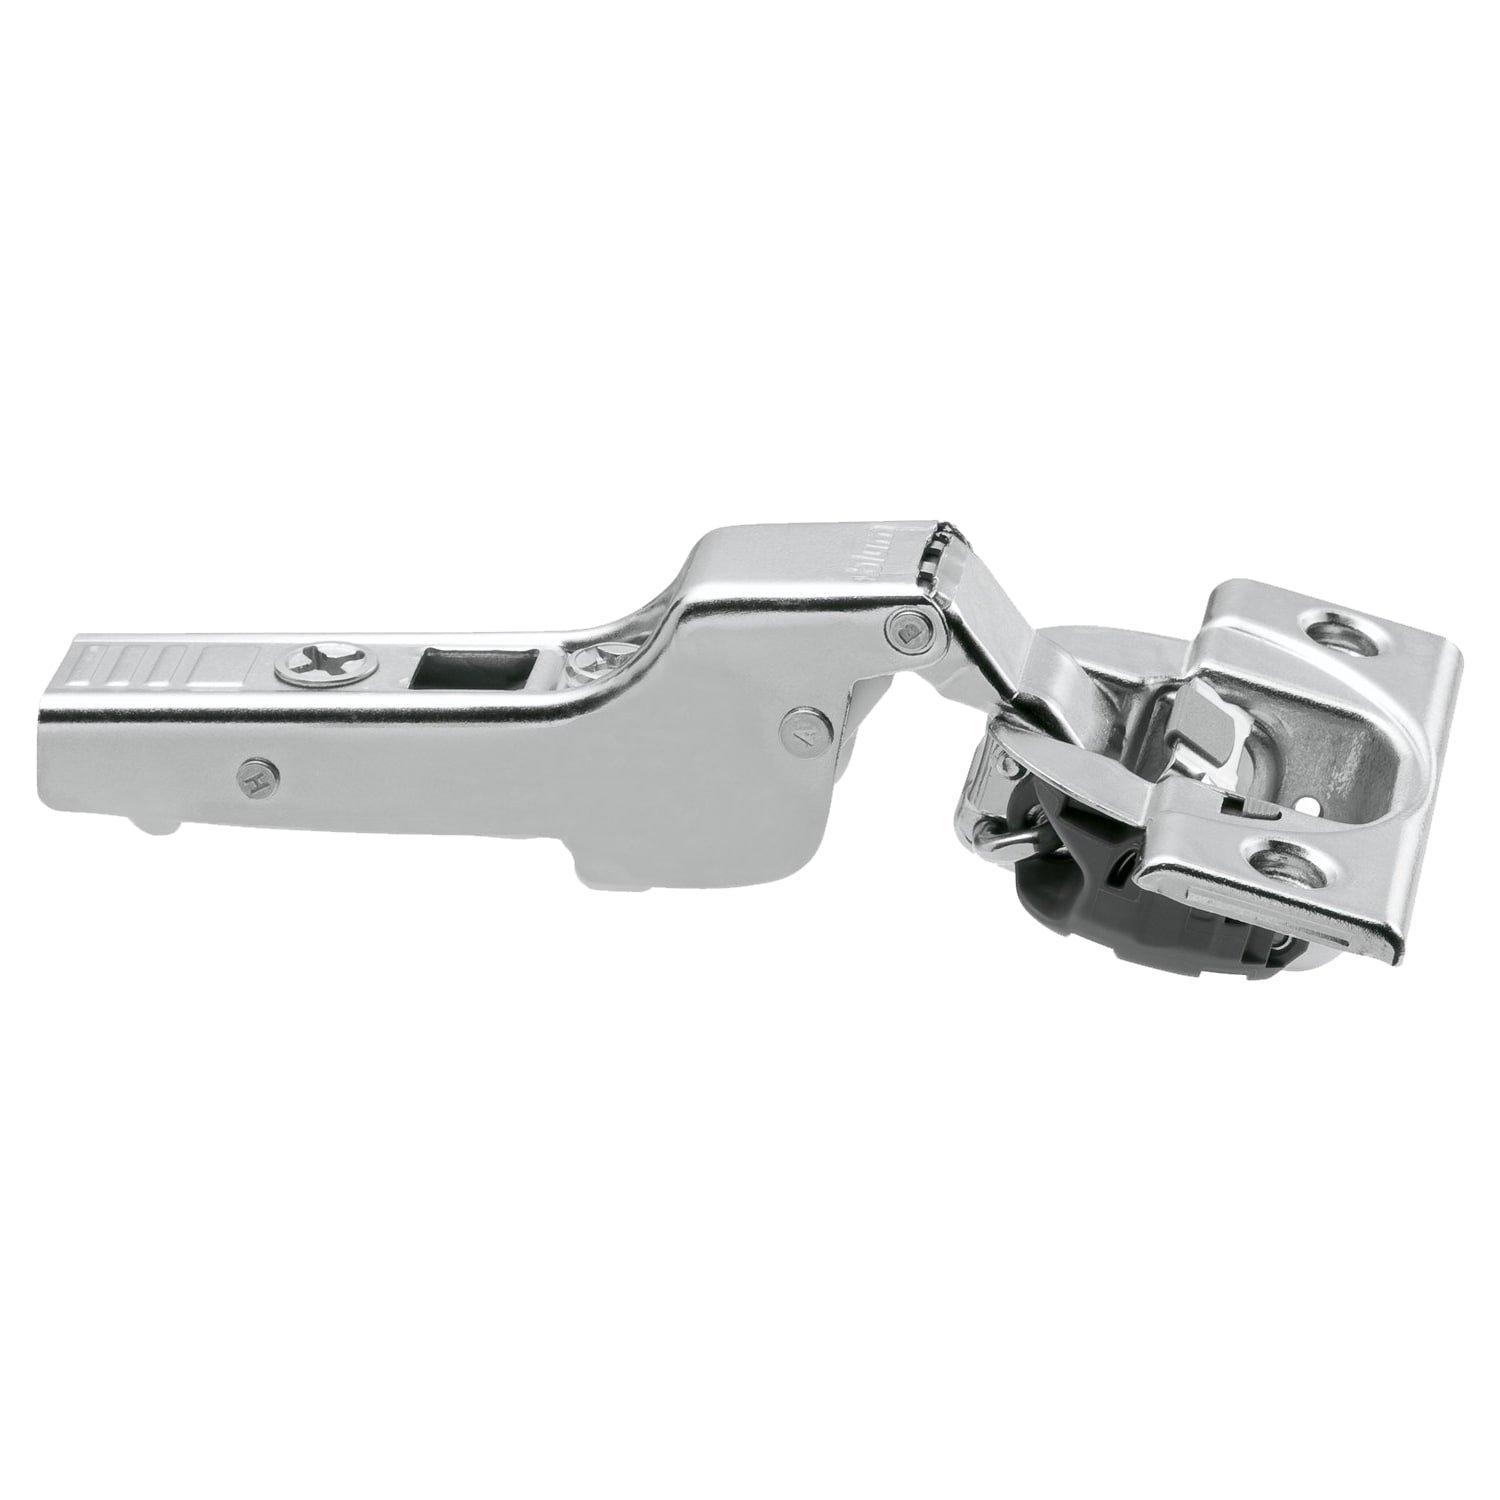 Blum Rok Hardware 110 Degree otion Half Crank Clip Top Screw-On Self Closing Soft Close Cabinet Hinge